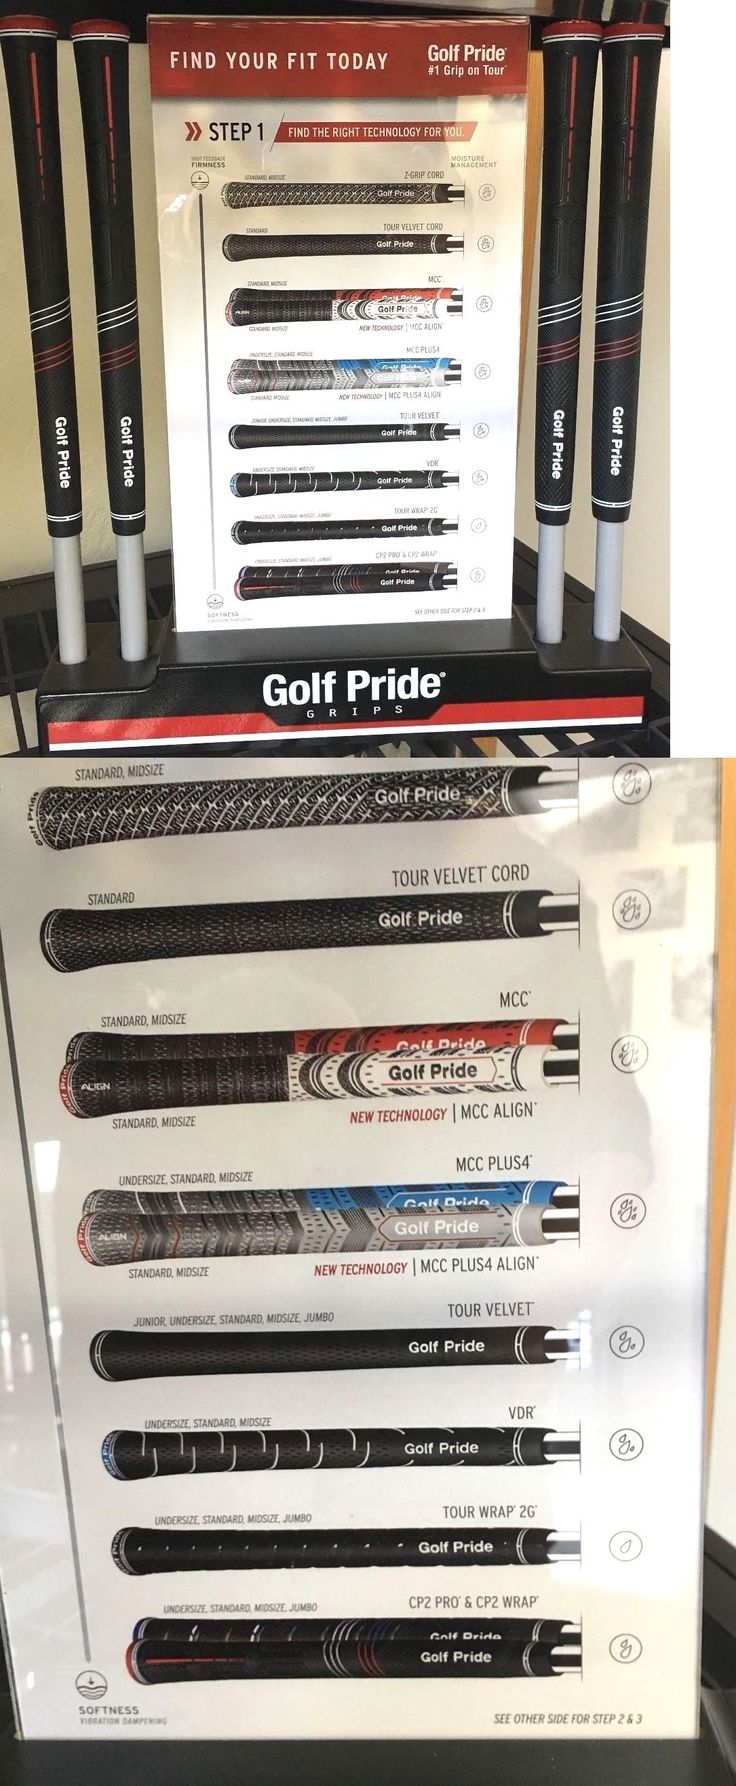 Golf Equip Tools and Supplies 179281: Golf Pride Grip Sizing Display Club Building Repair New Open Box -> BUY IT NOW ONLY: $39.95 on eBay!